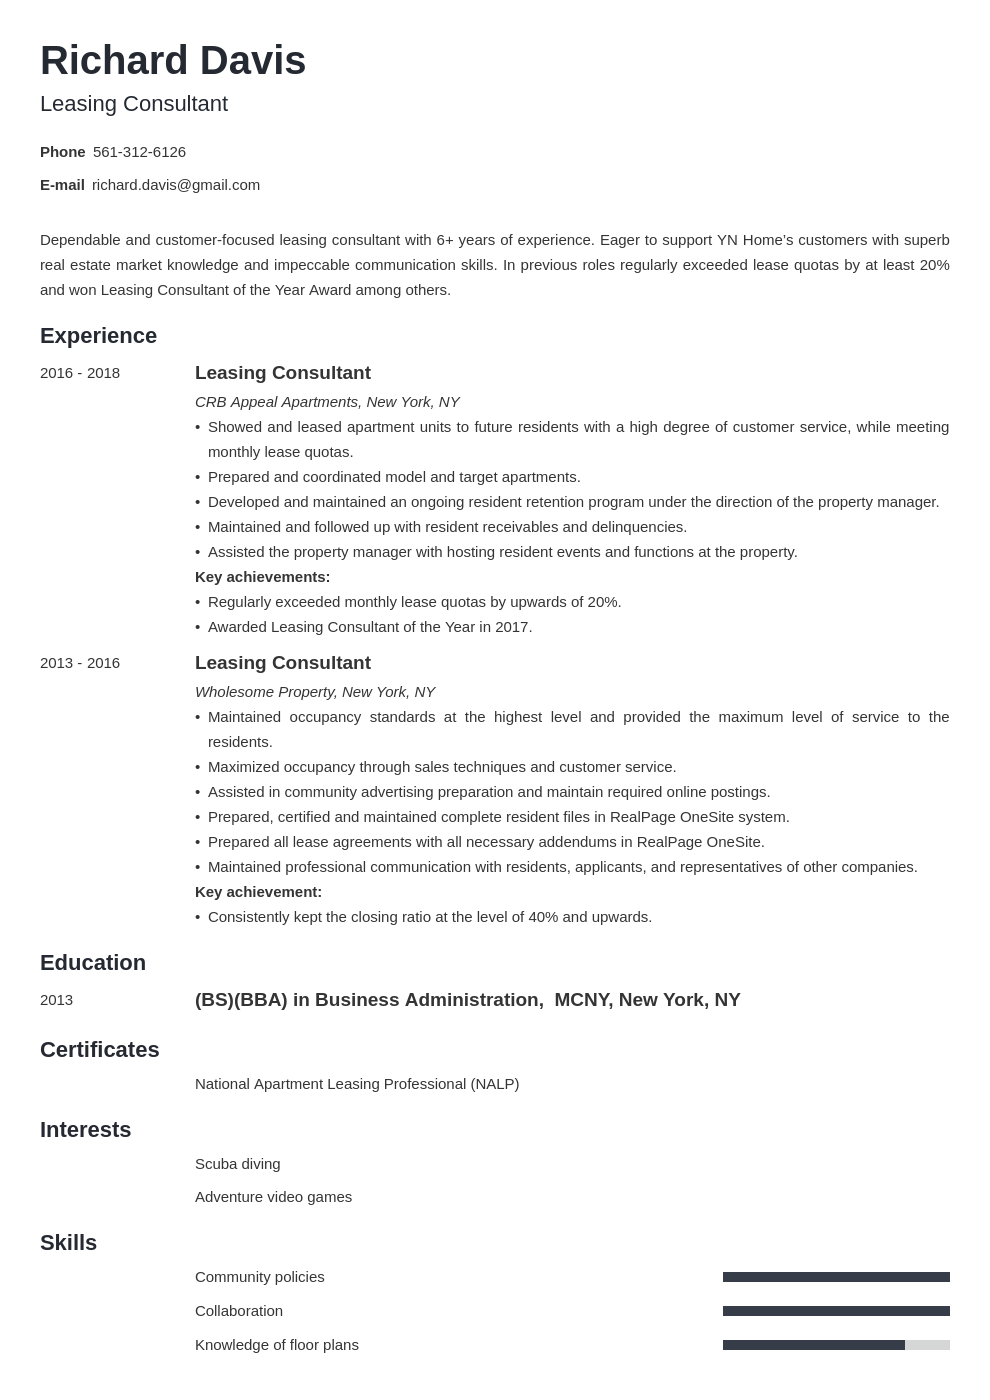 leasing consultant resume example template minimo in 2020